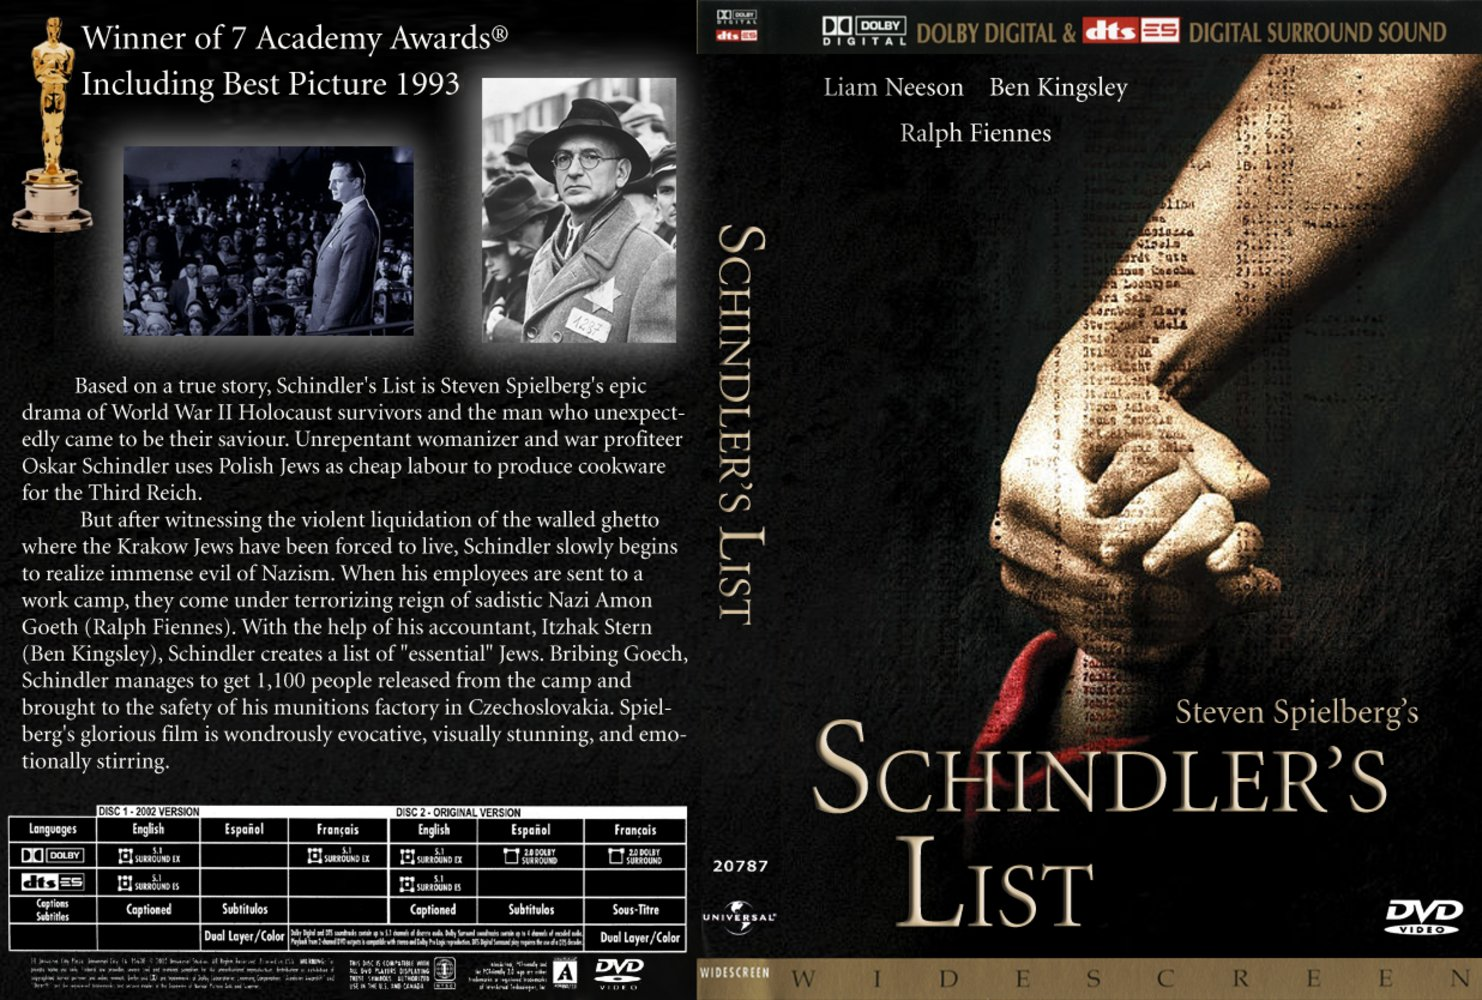 schindlers list 1993 essay View and download schindlers list essays examples also discover topics, titles, outlines, thesis statements, and conclusions for your schindlers list essay.